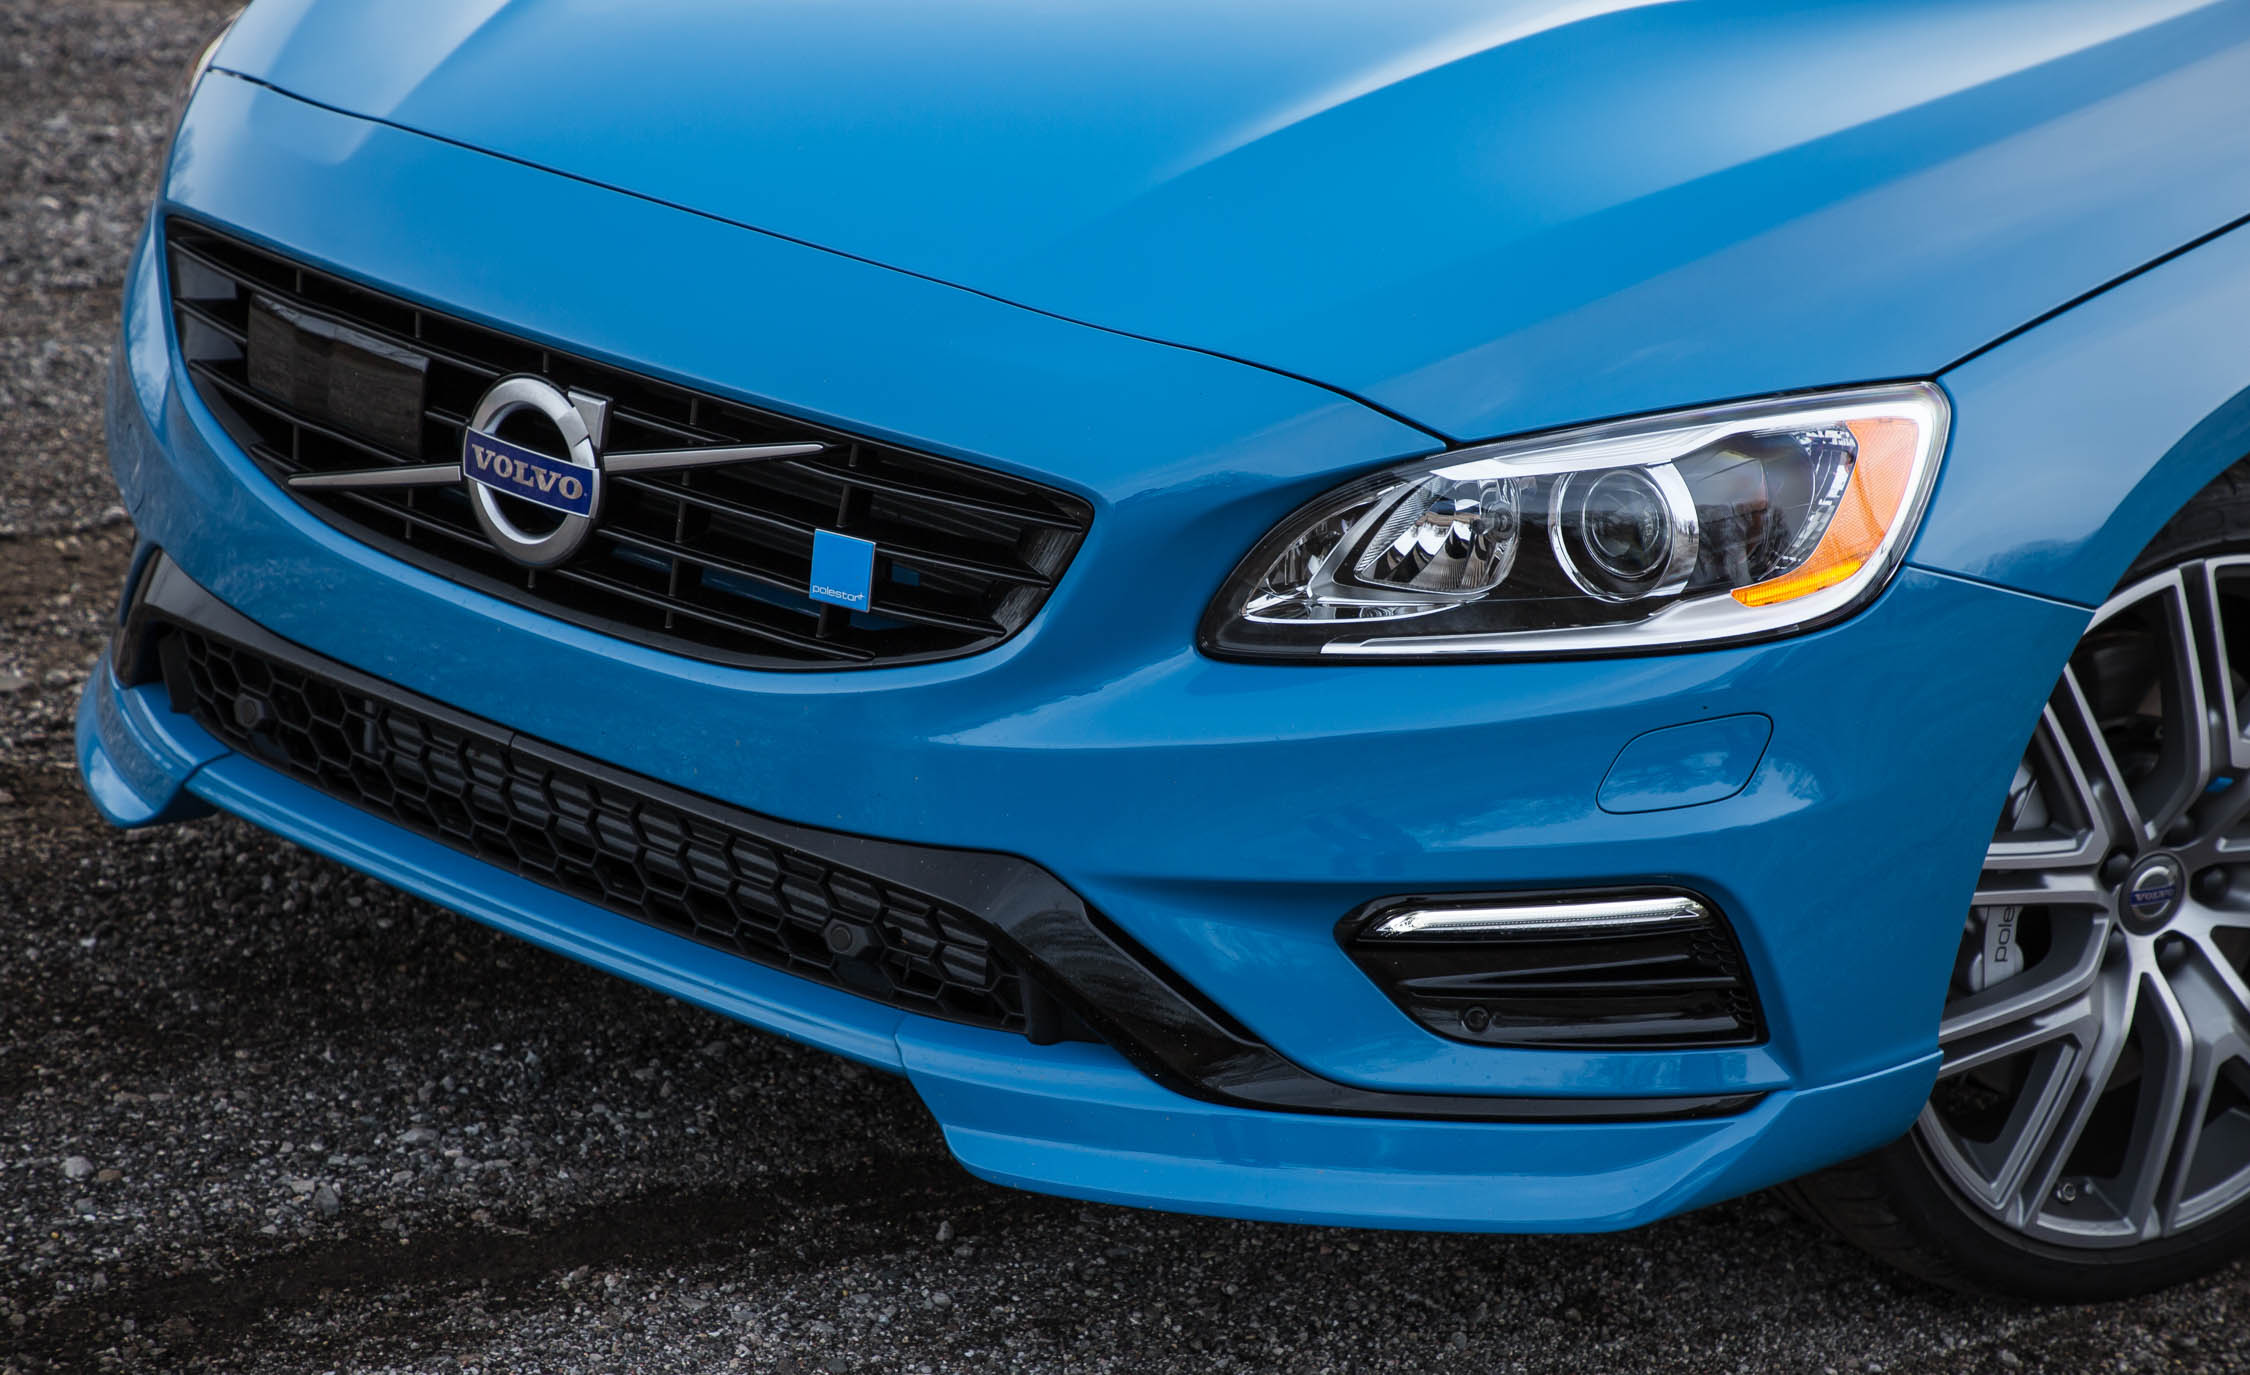 2017 Volvo V60 Polestar Exterior View Grille And Bumper (View 15 of 53)